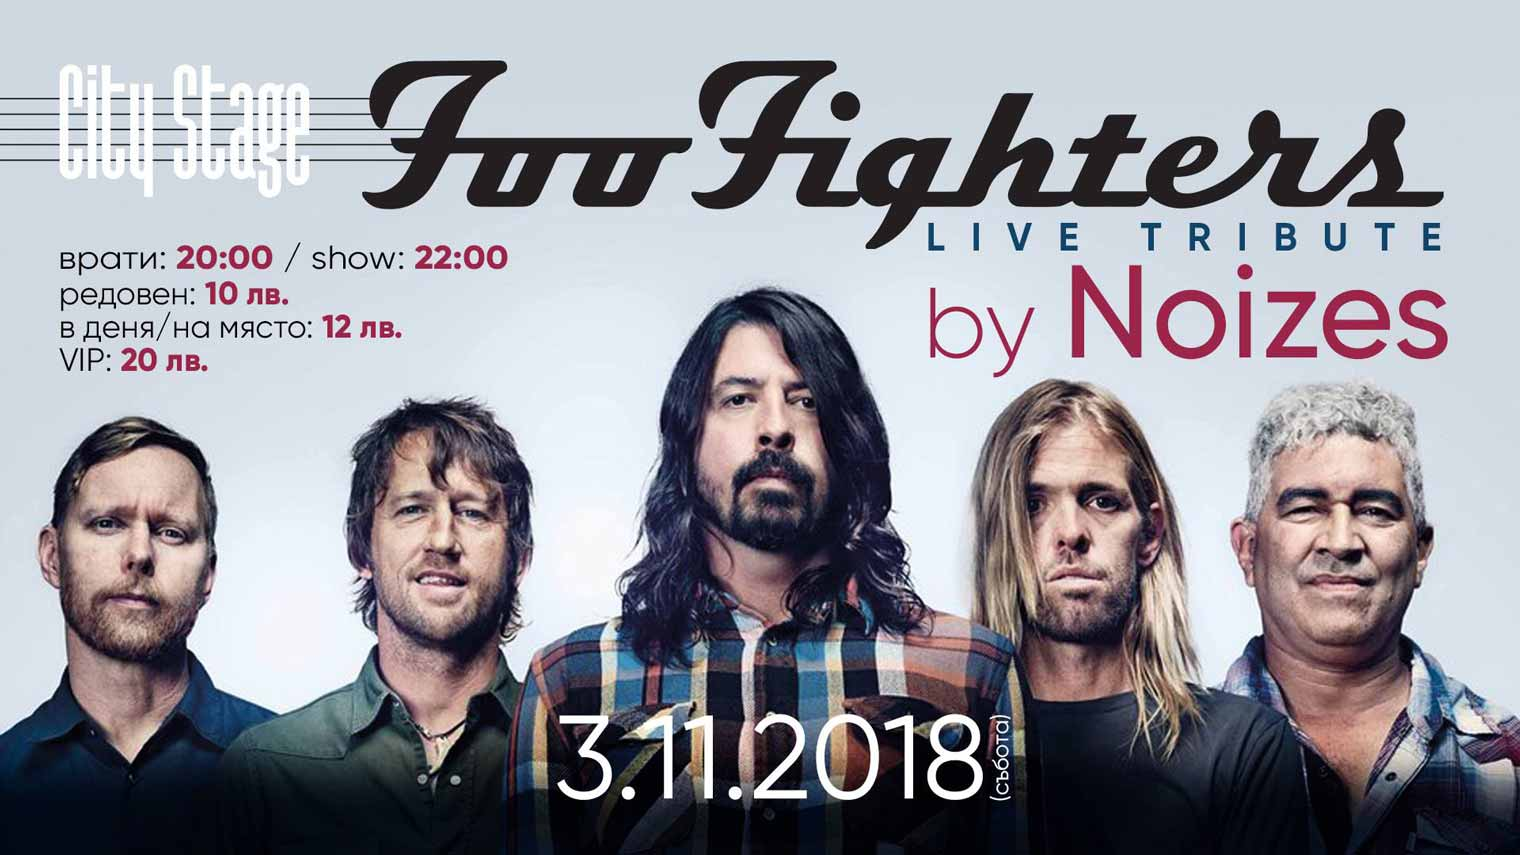 Foo Fighters Live Tribute at City Stage - 03 ноември 2018 20:00ч.